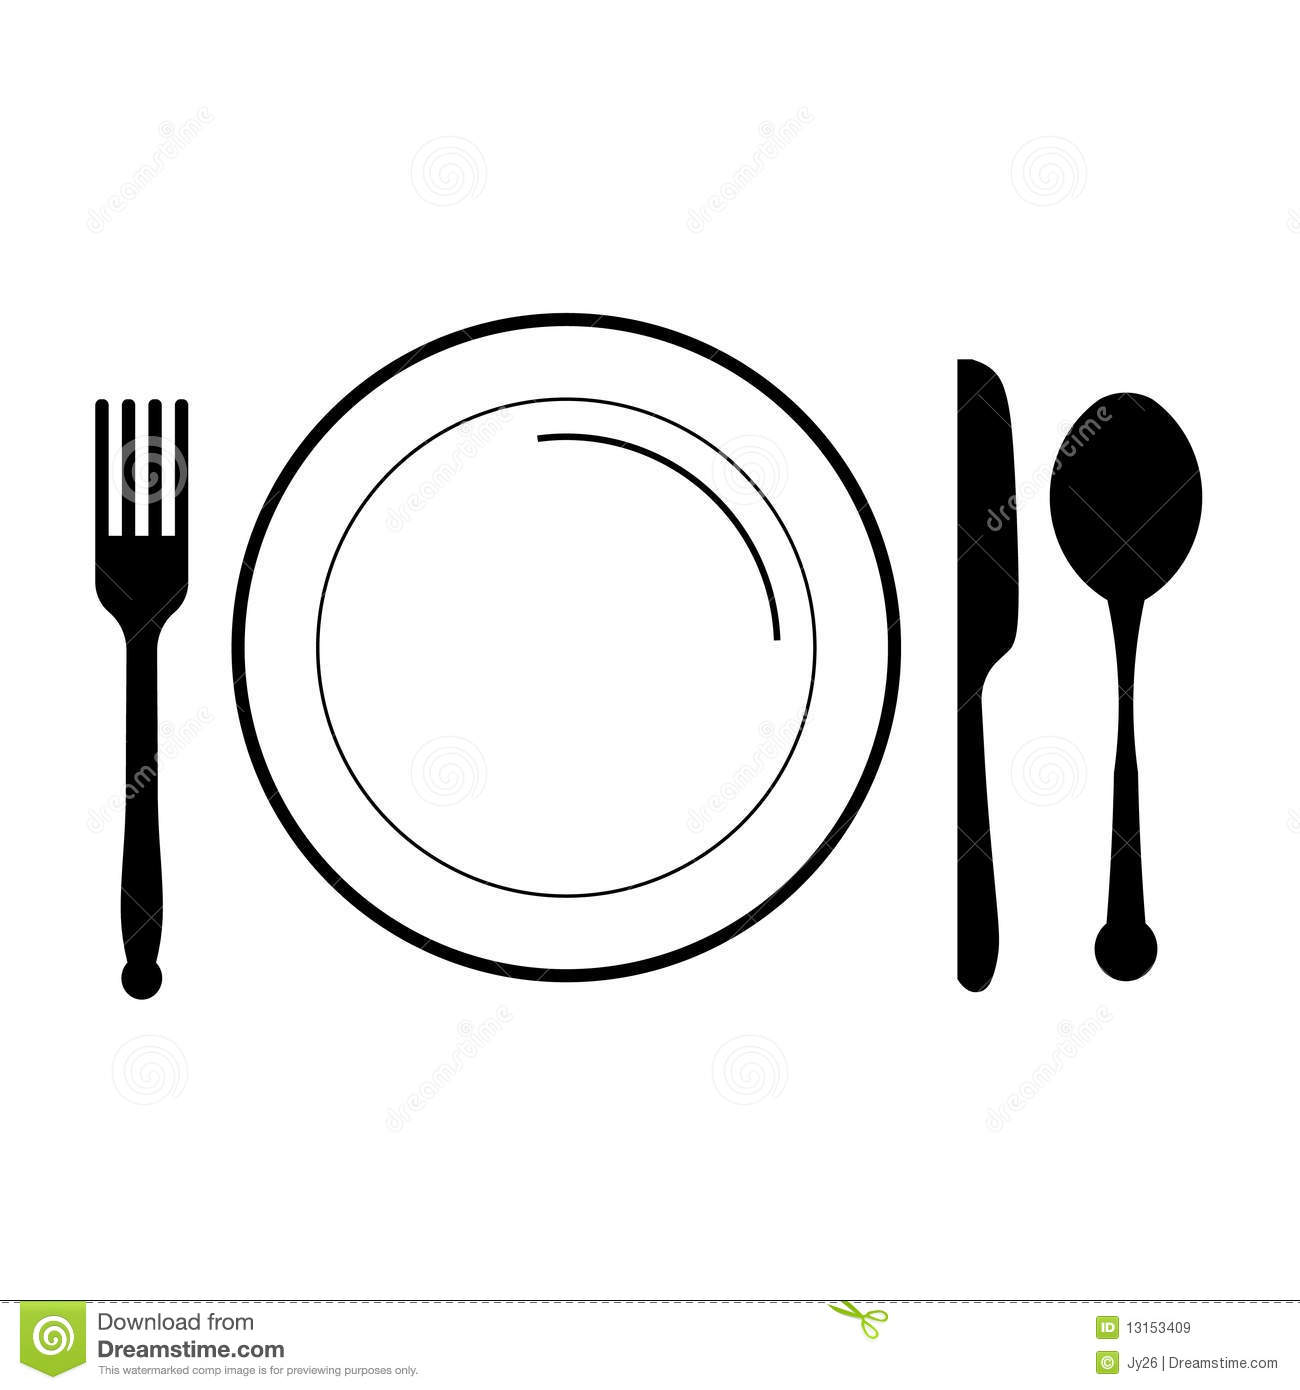 Khife clipart spoon Plate Spoon Download Spoon Clipart